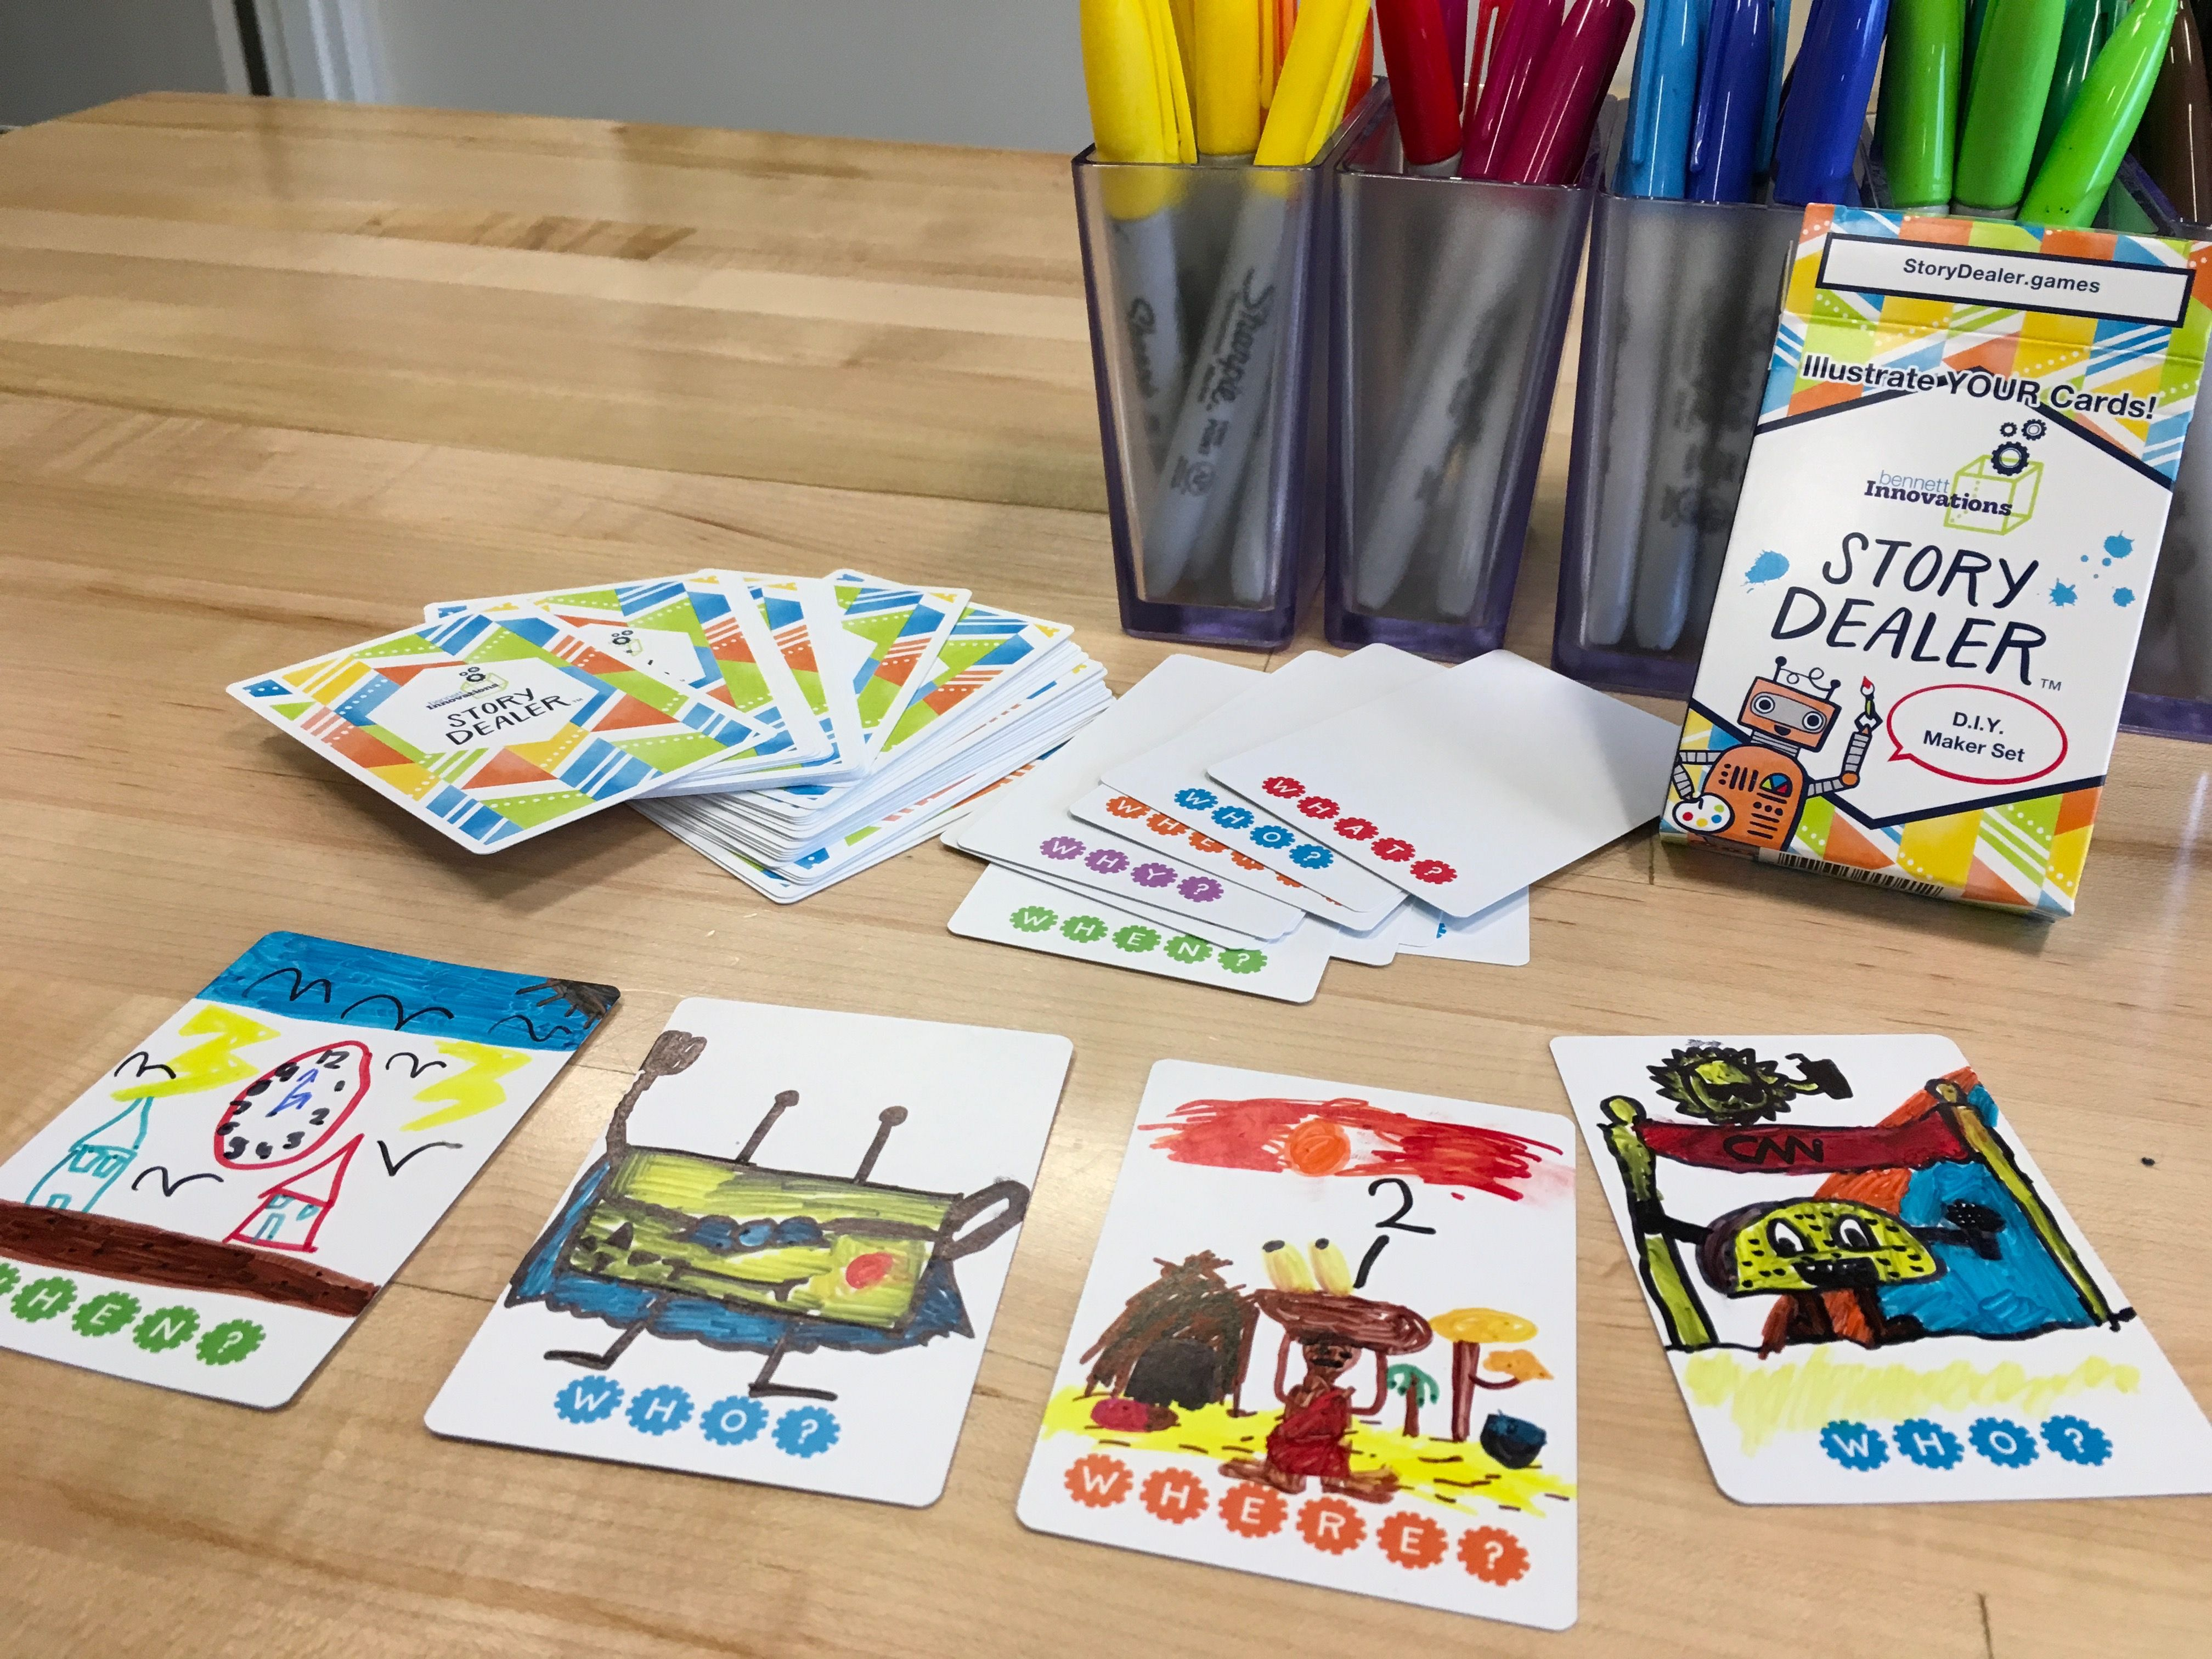 Diy maker set is a do it yourself storytelling card game also diy maker set is a do it yourself storytelling card game solutioingenieria Images